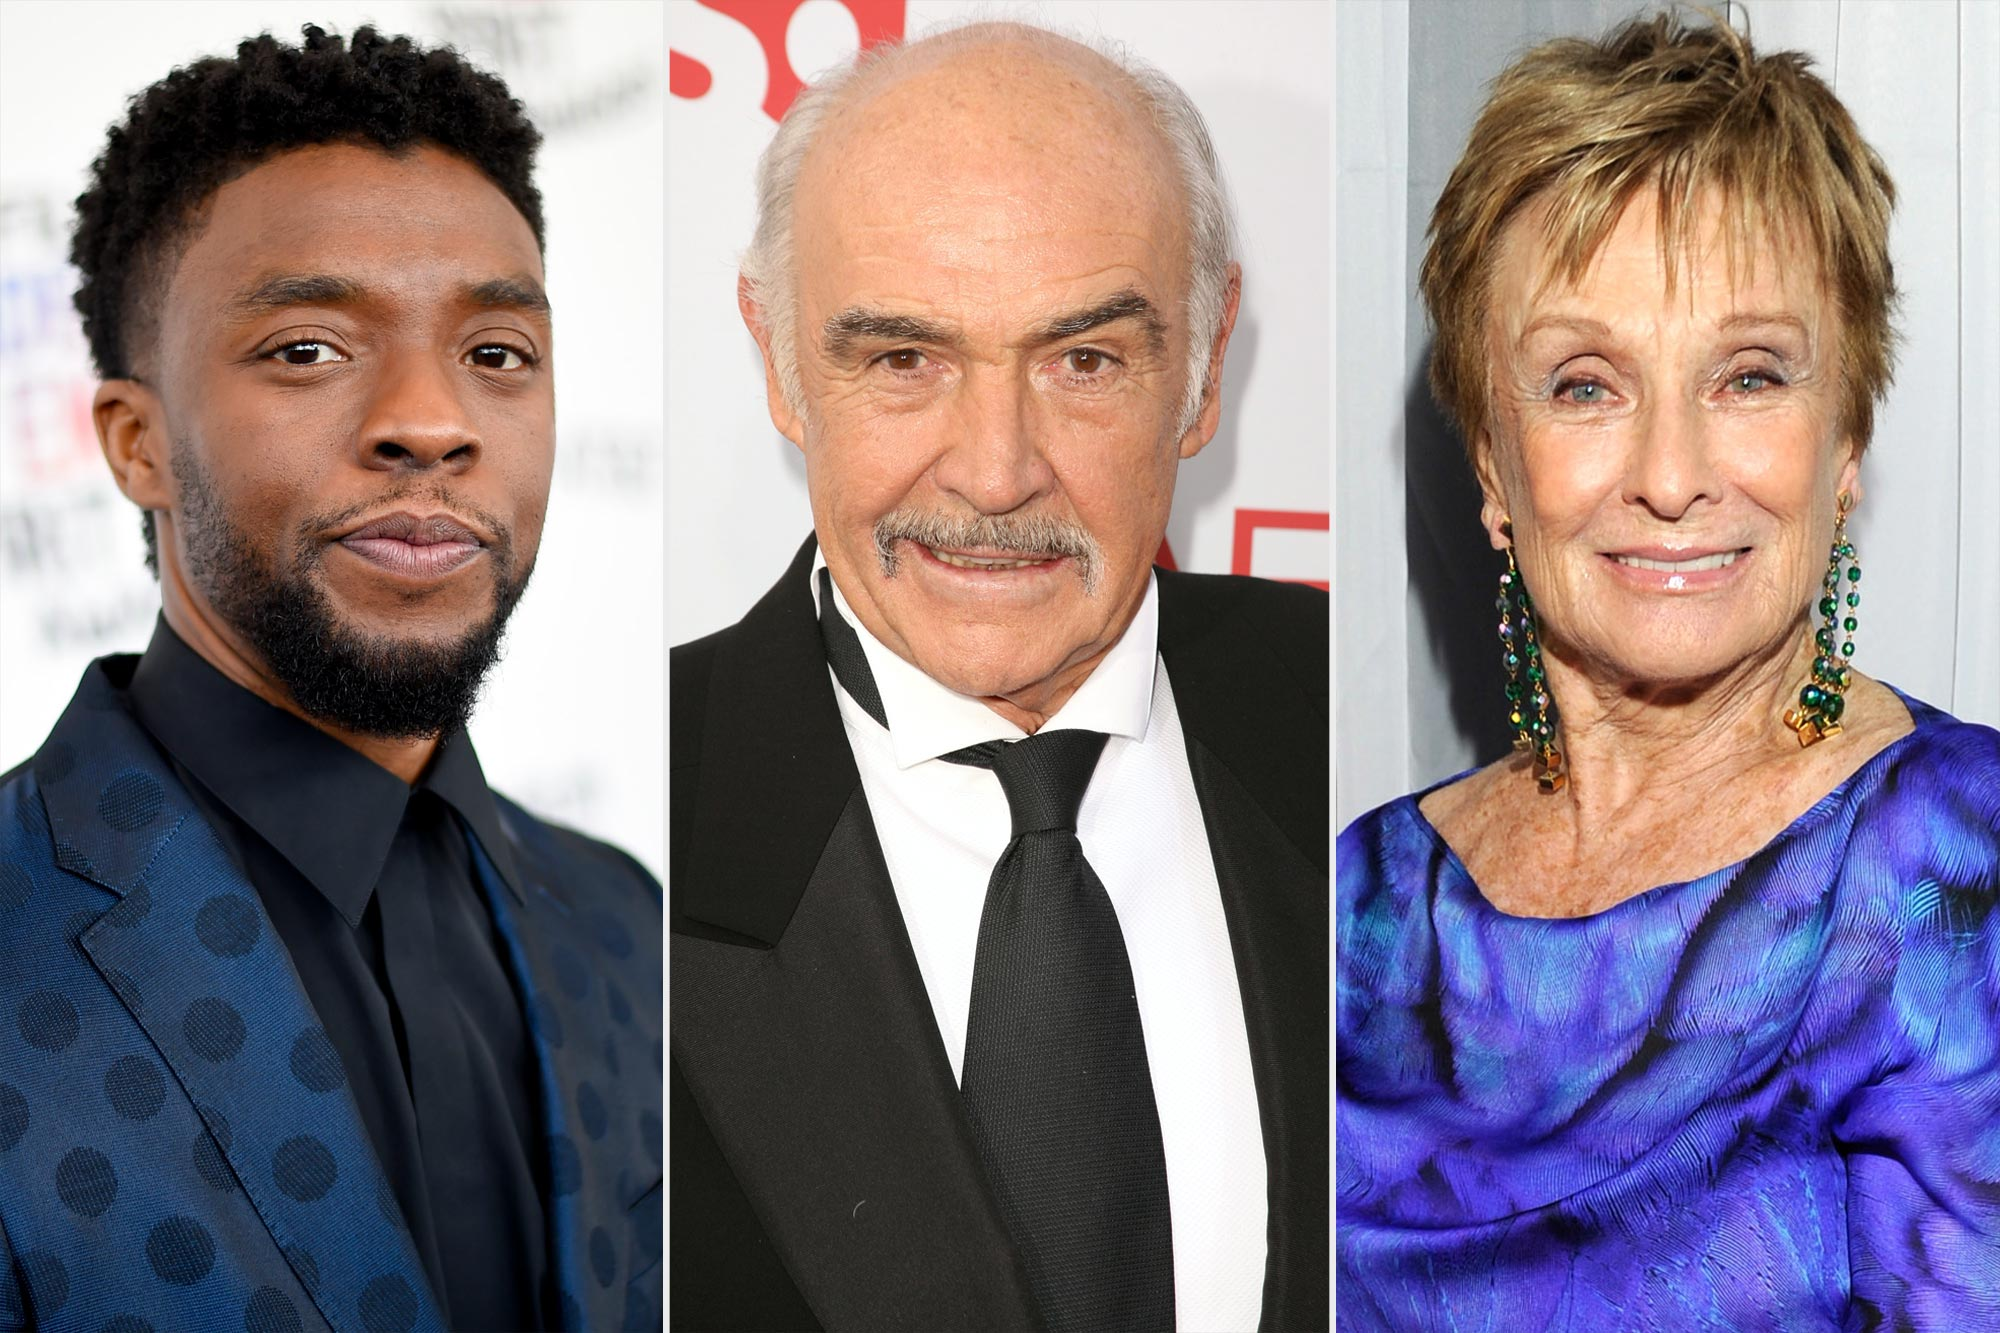 Chadwick Boseman, Sean Connery, and Cloris Leachman